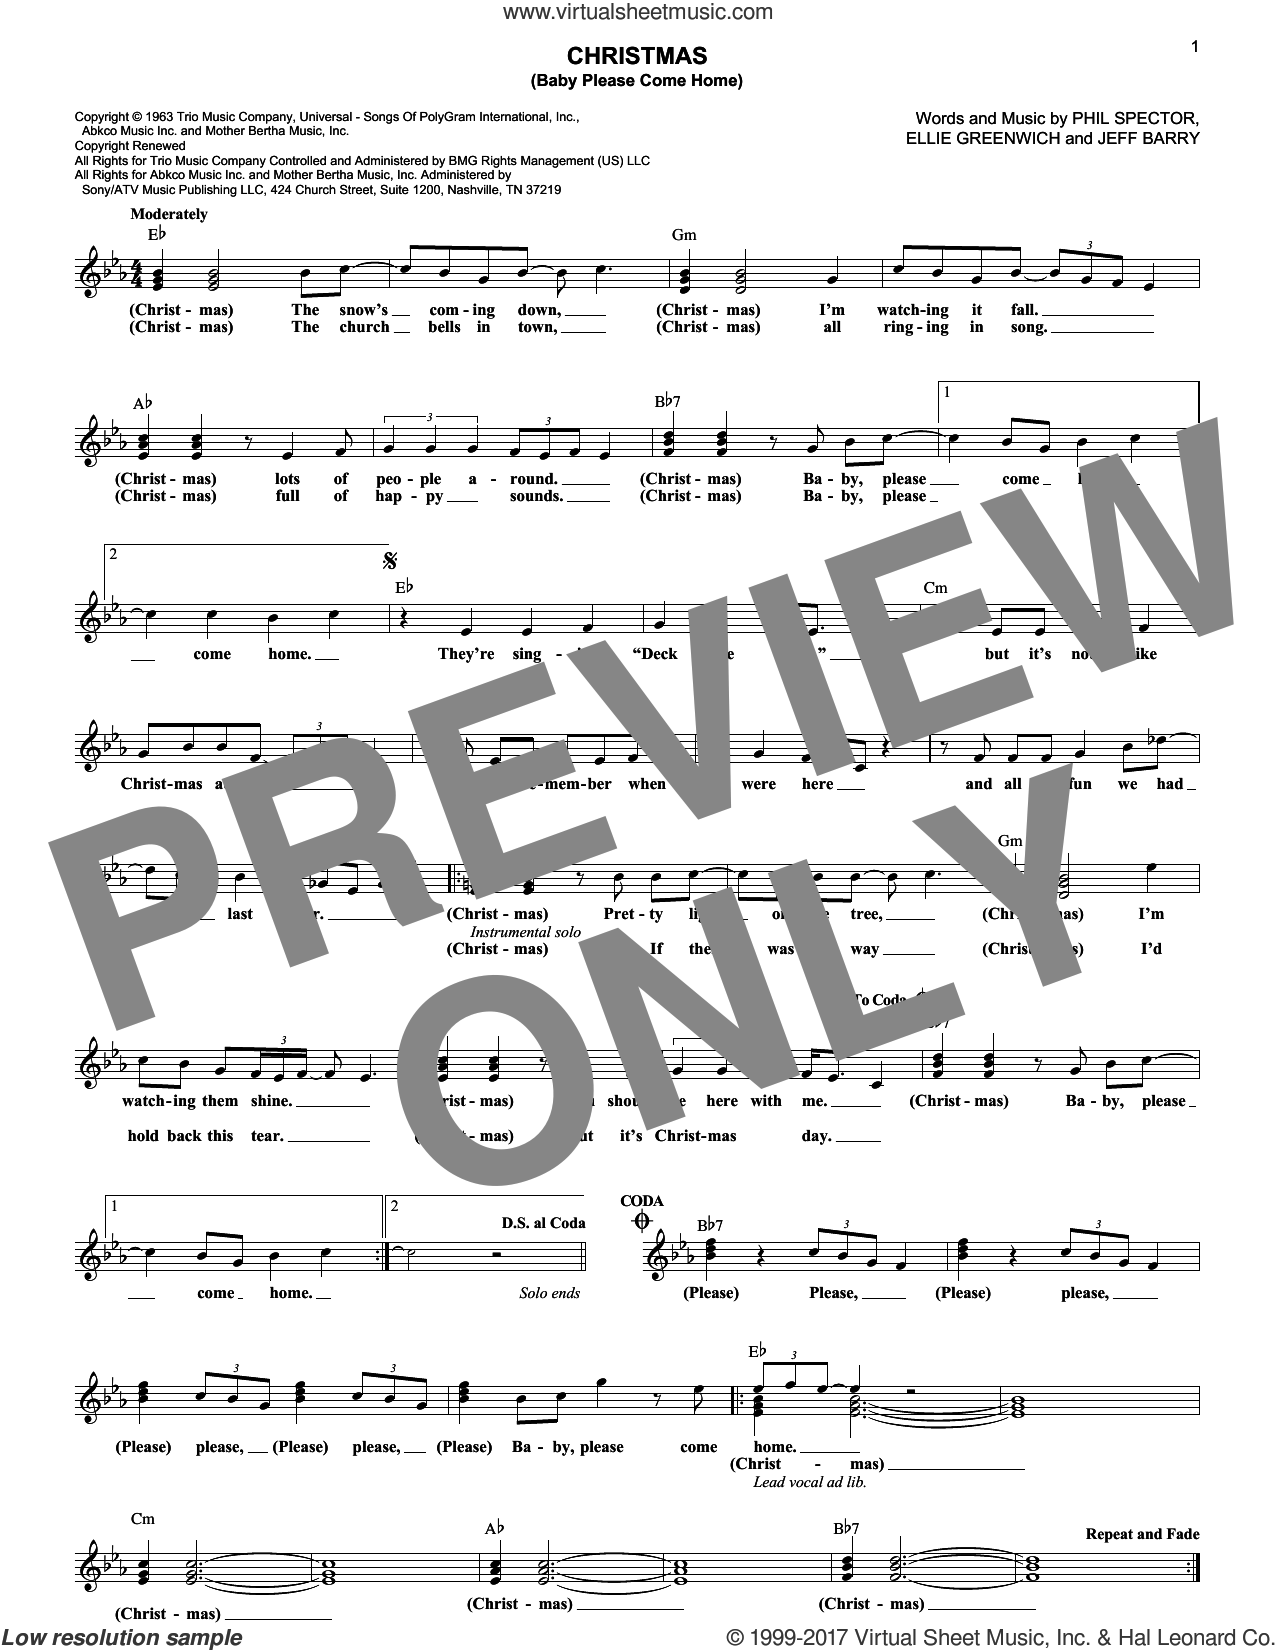 Christmas (Baby Please Come Home) sheet music for voice and other instruments (fake book) by Mariah Carey, Ellie Greenwich, Jeff Barry and Phil Spector, intermediate skill level